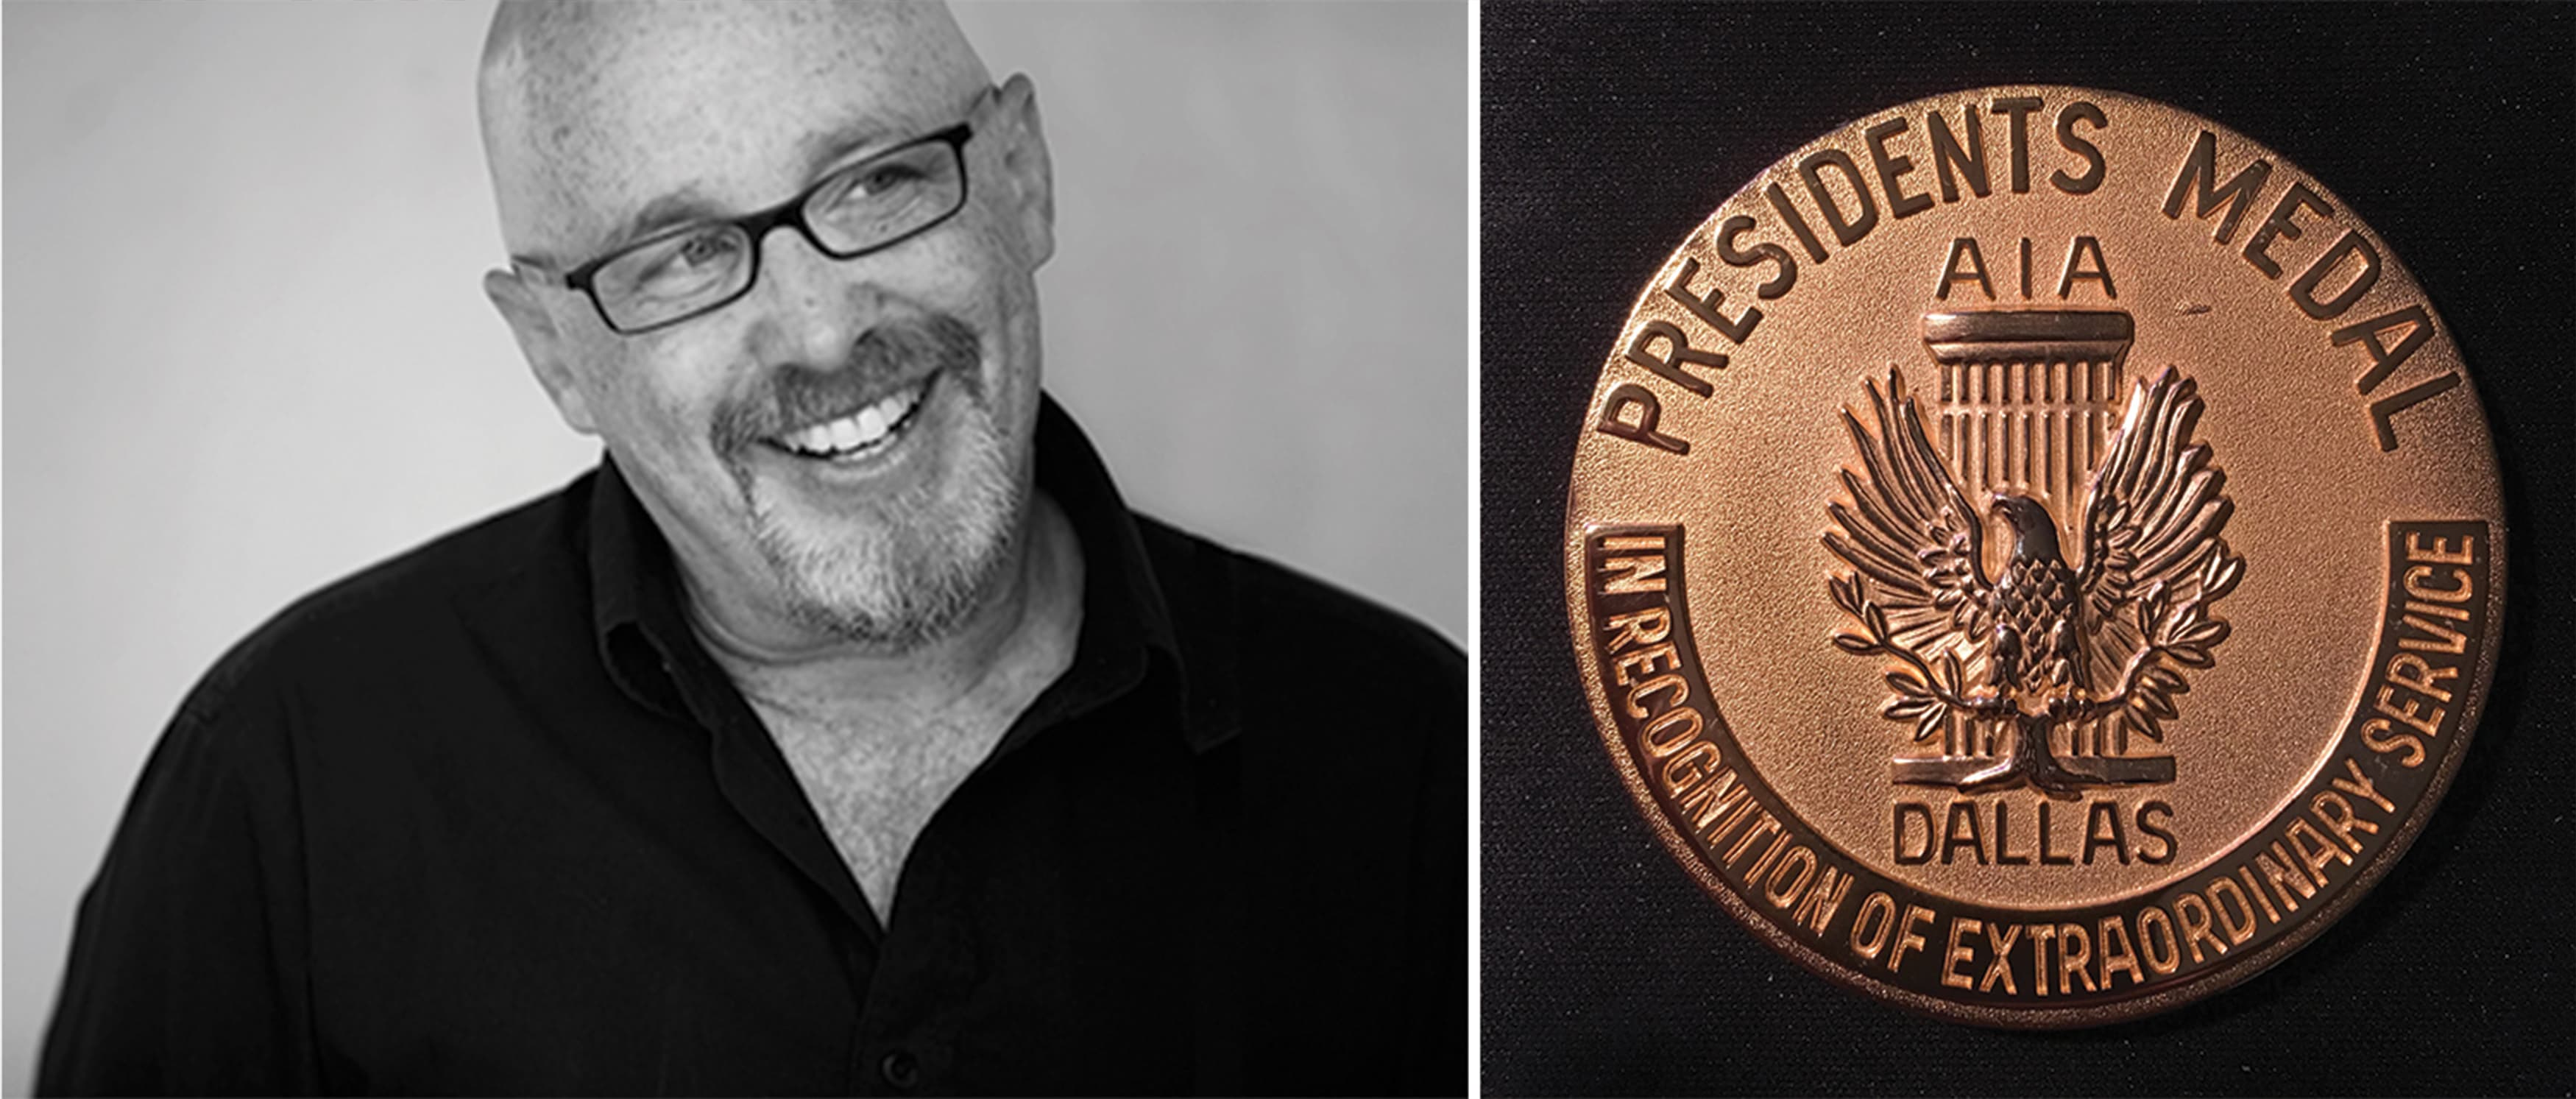 Harry Mark, FAIA, RSM's Executive Director, was recently awarded the AIA President's Medal.